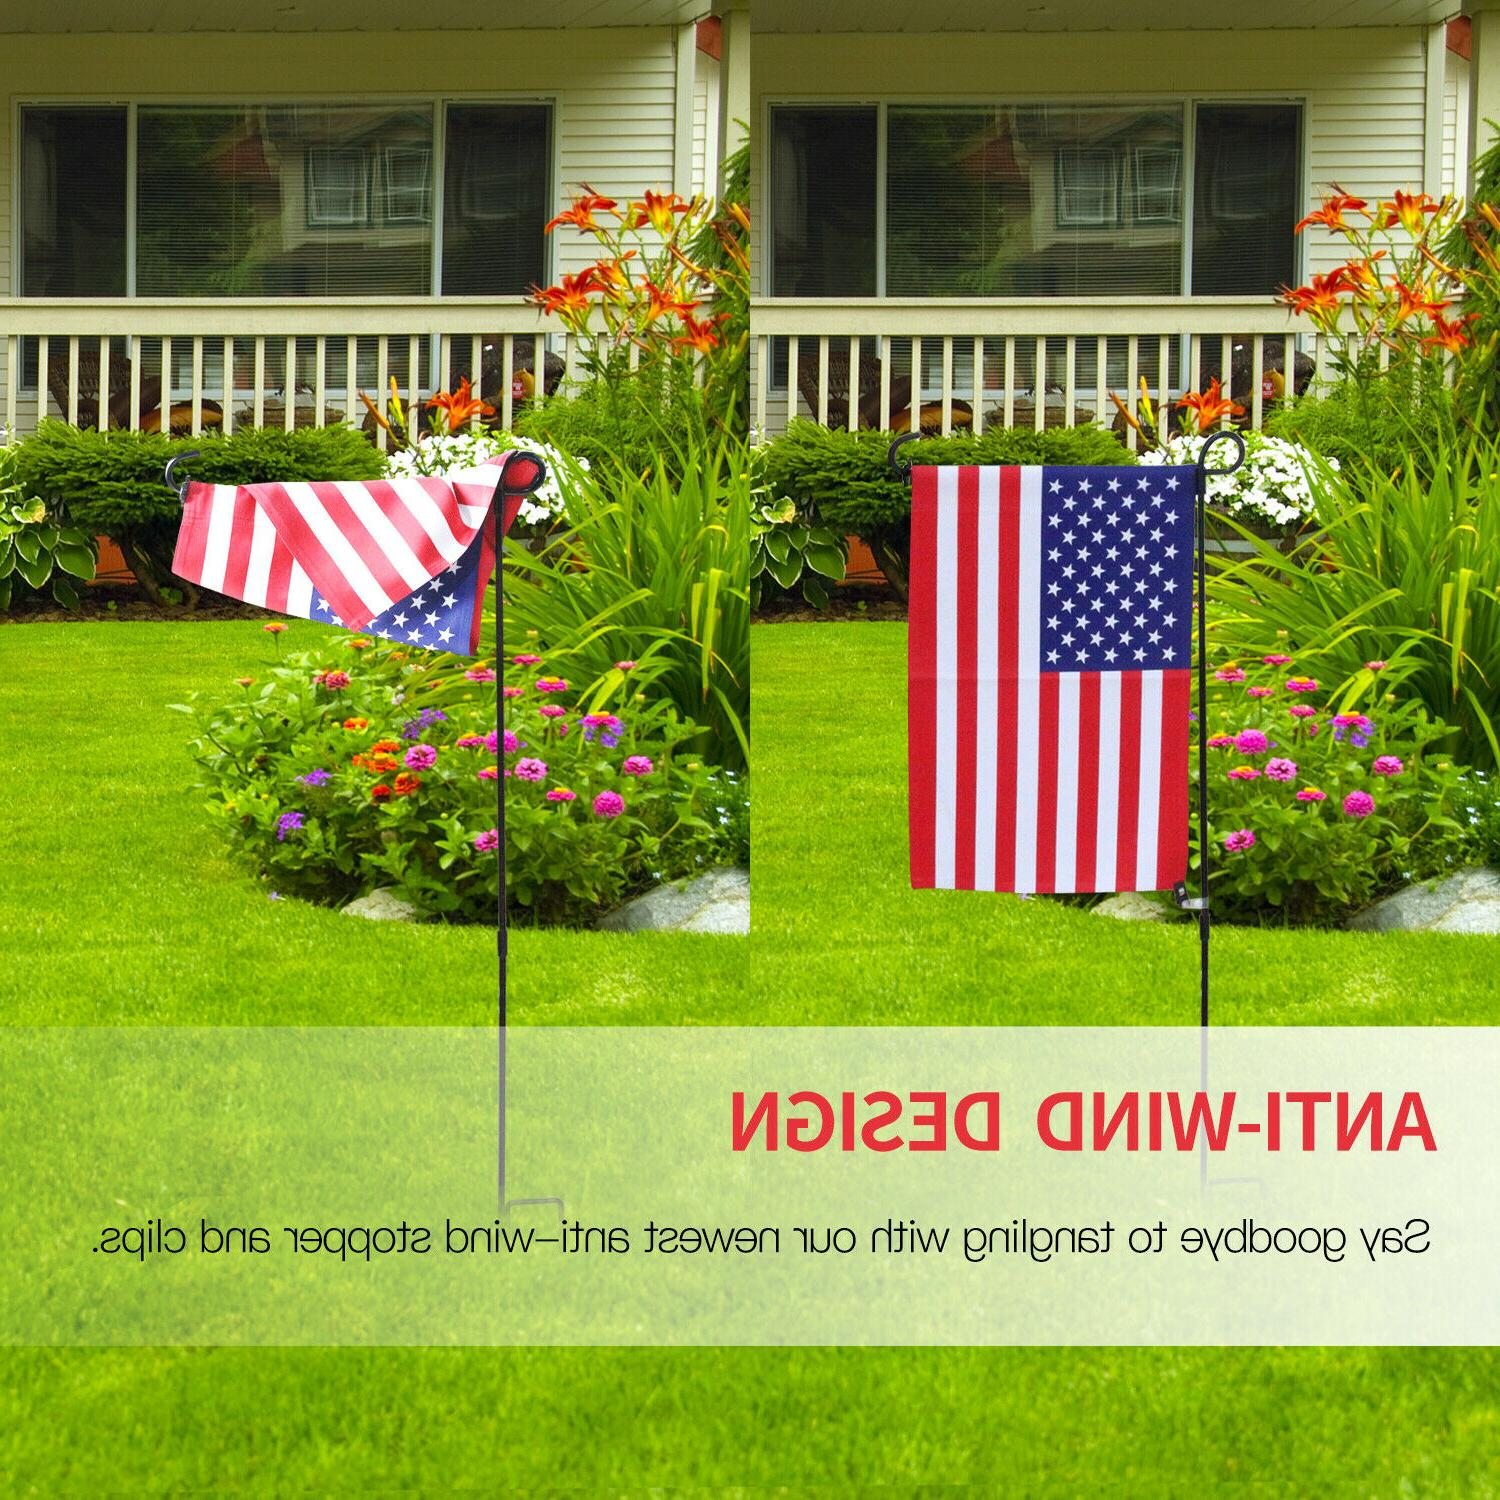 Anley 10 Garden Flag and Anti-Wind